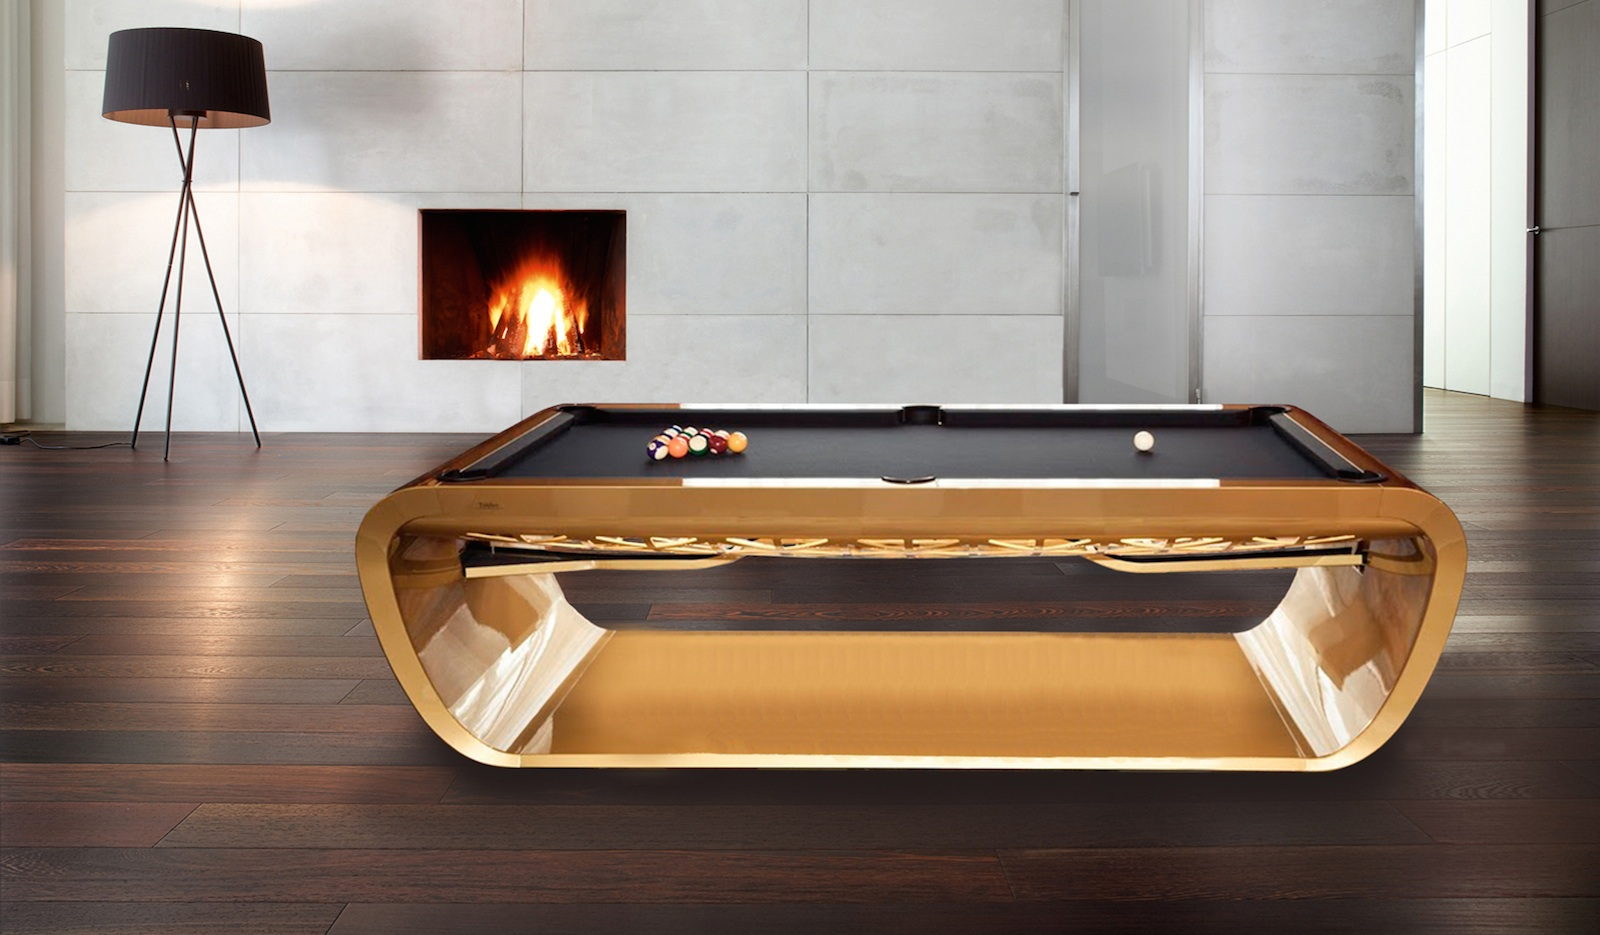 Luxury pool tables buyers guide contact us keyboard keysfo Images